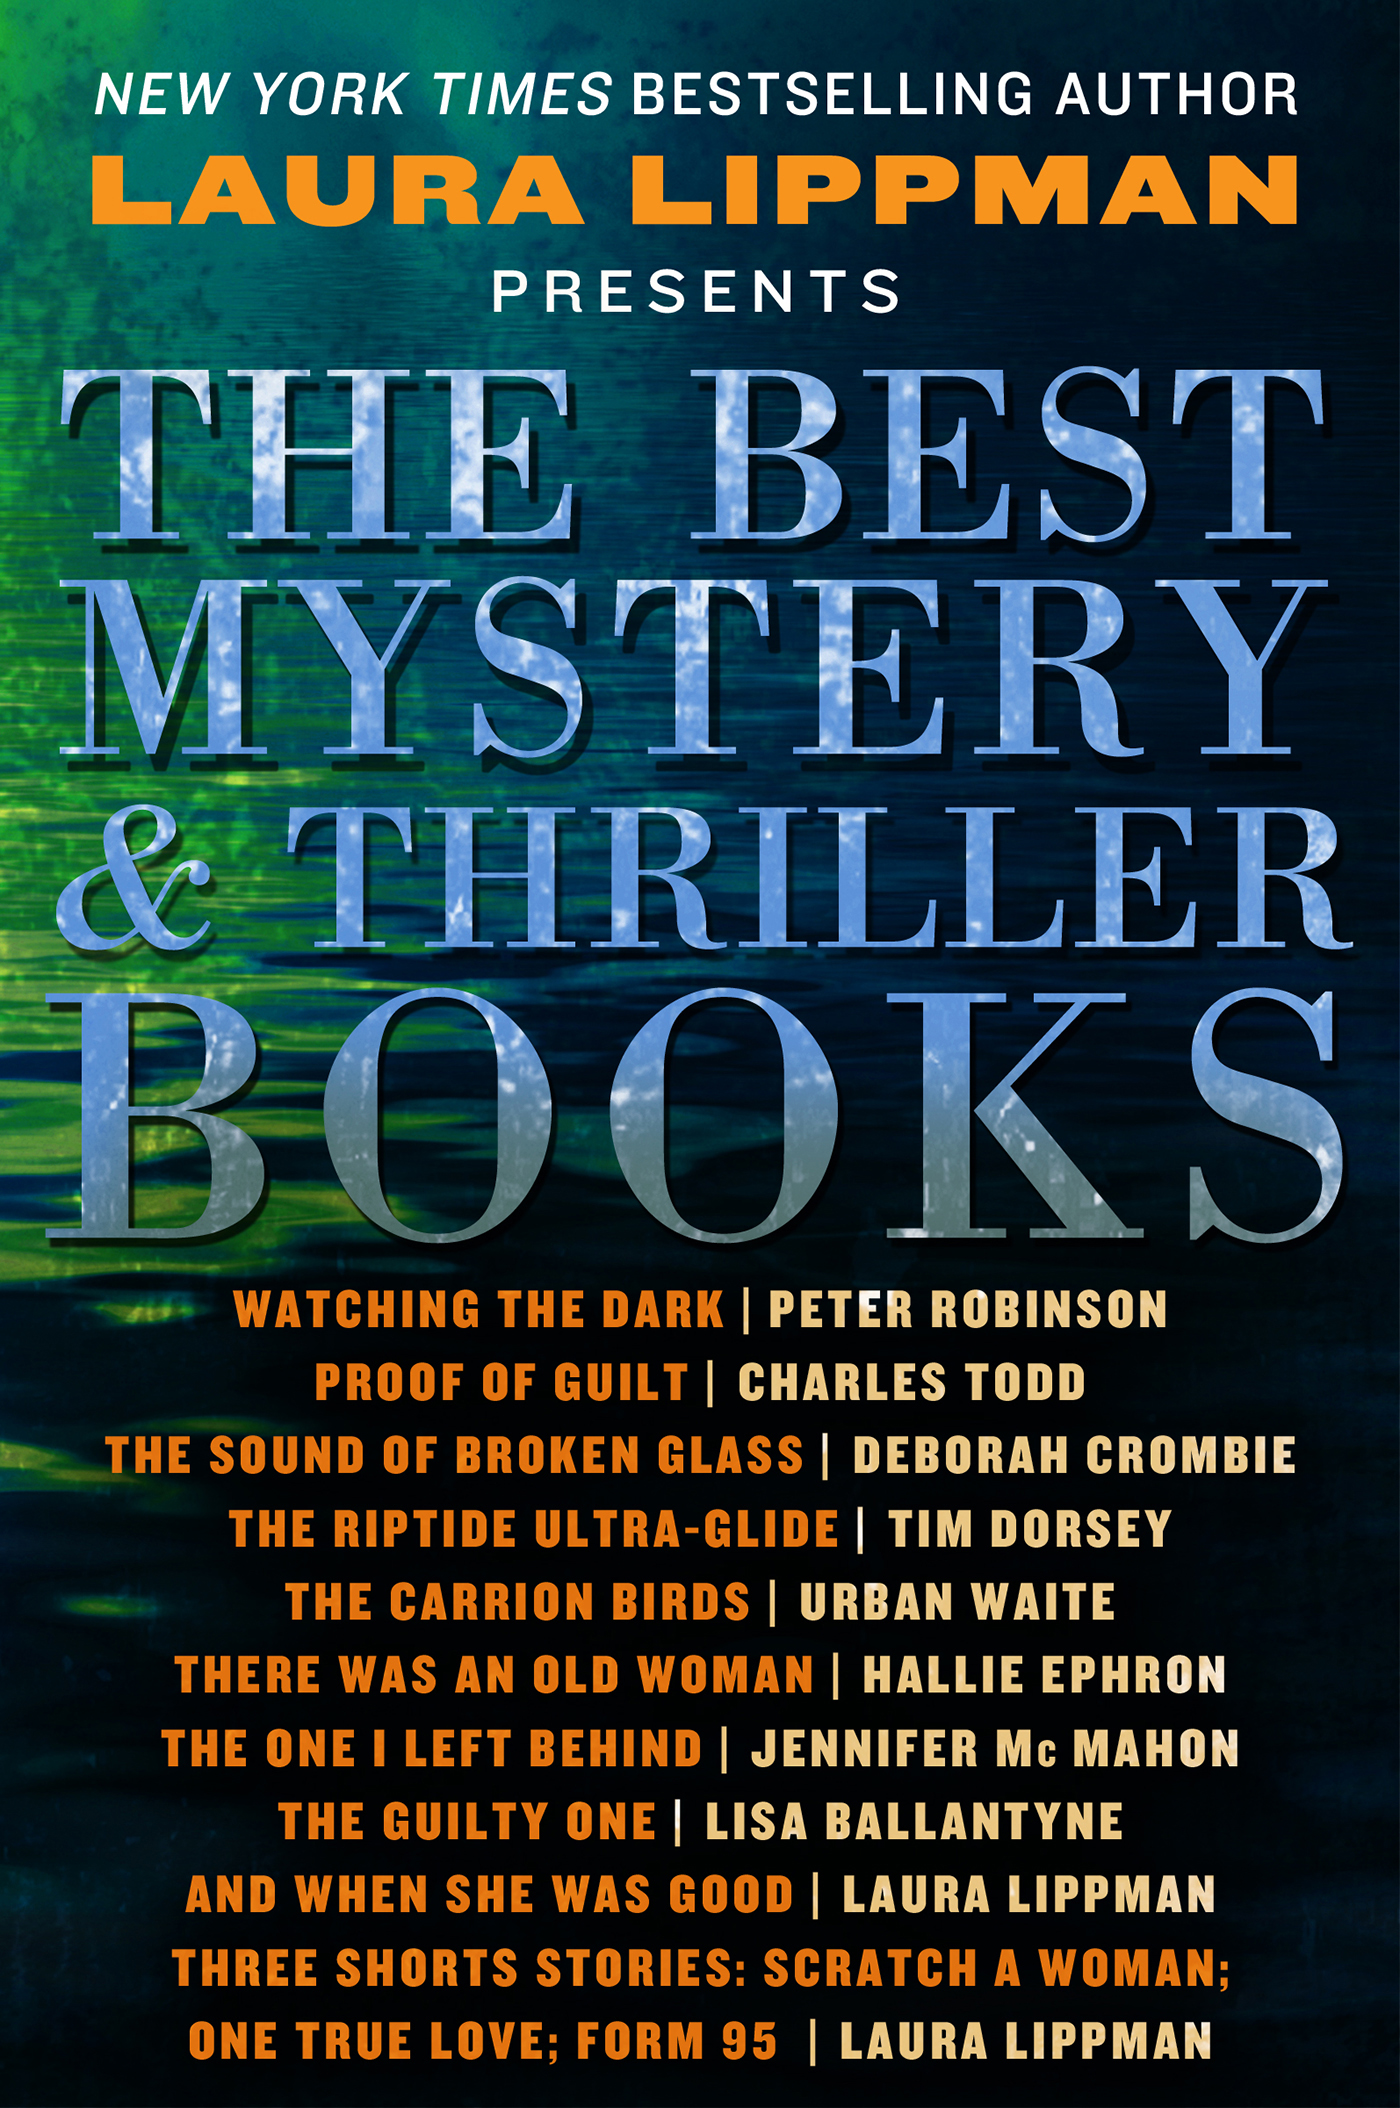 The Best Mystery & Thriller Books